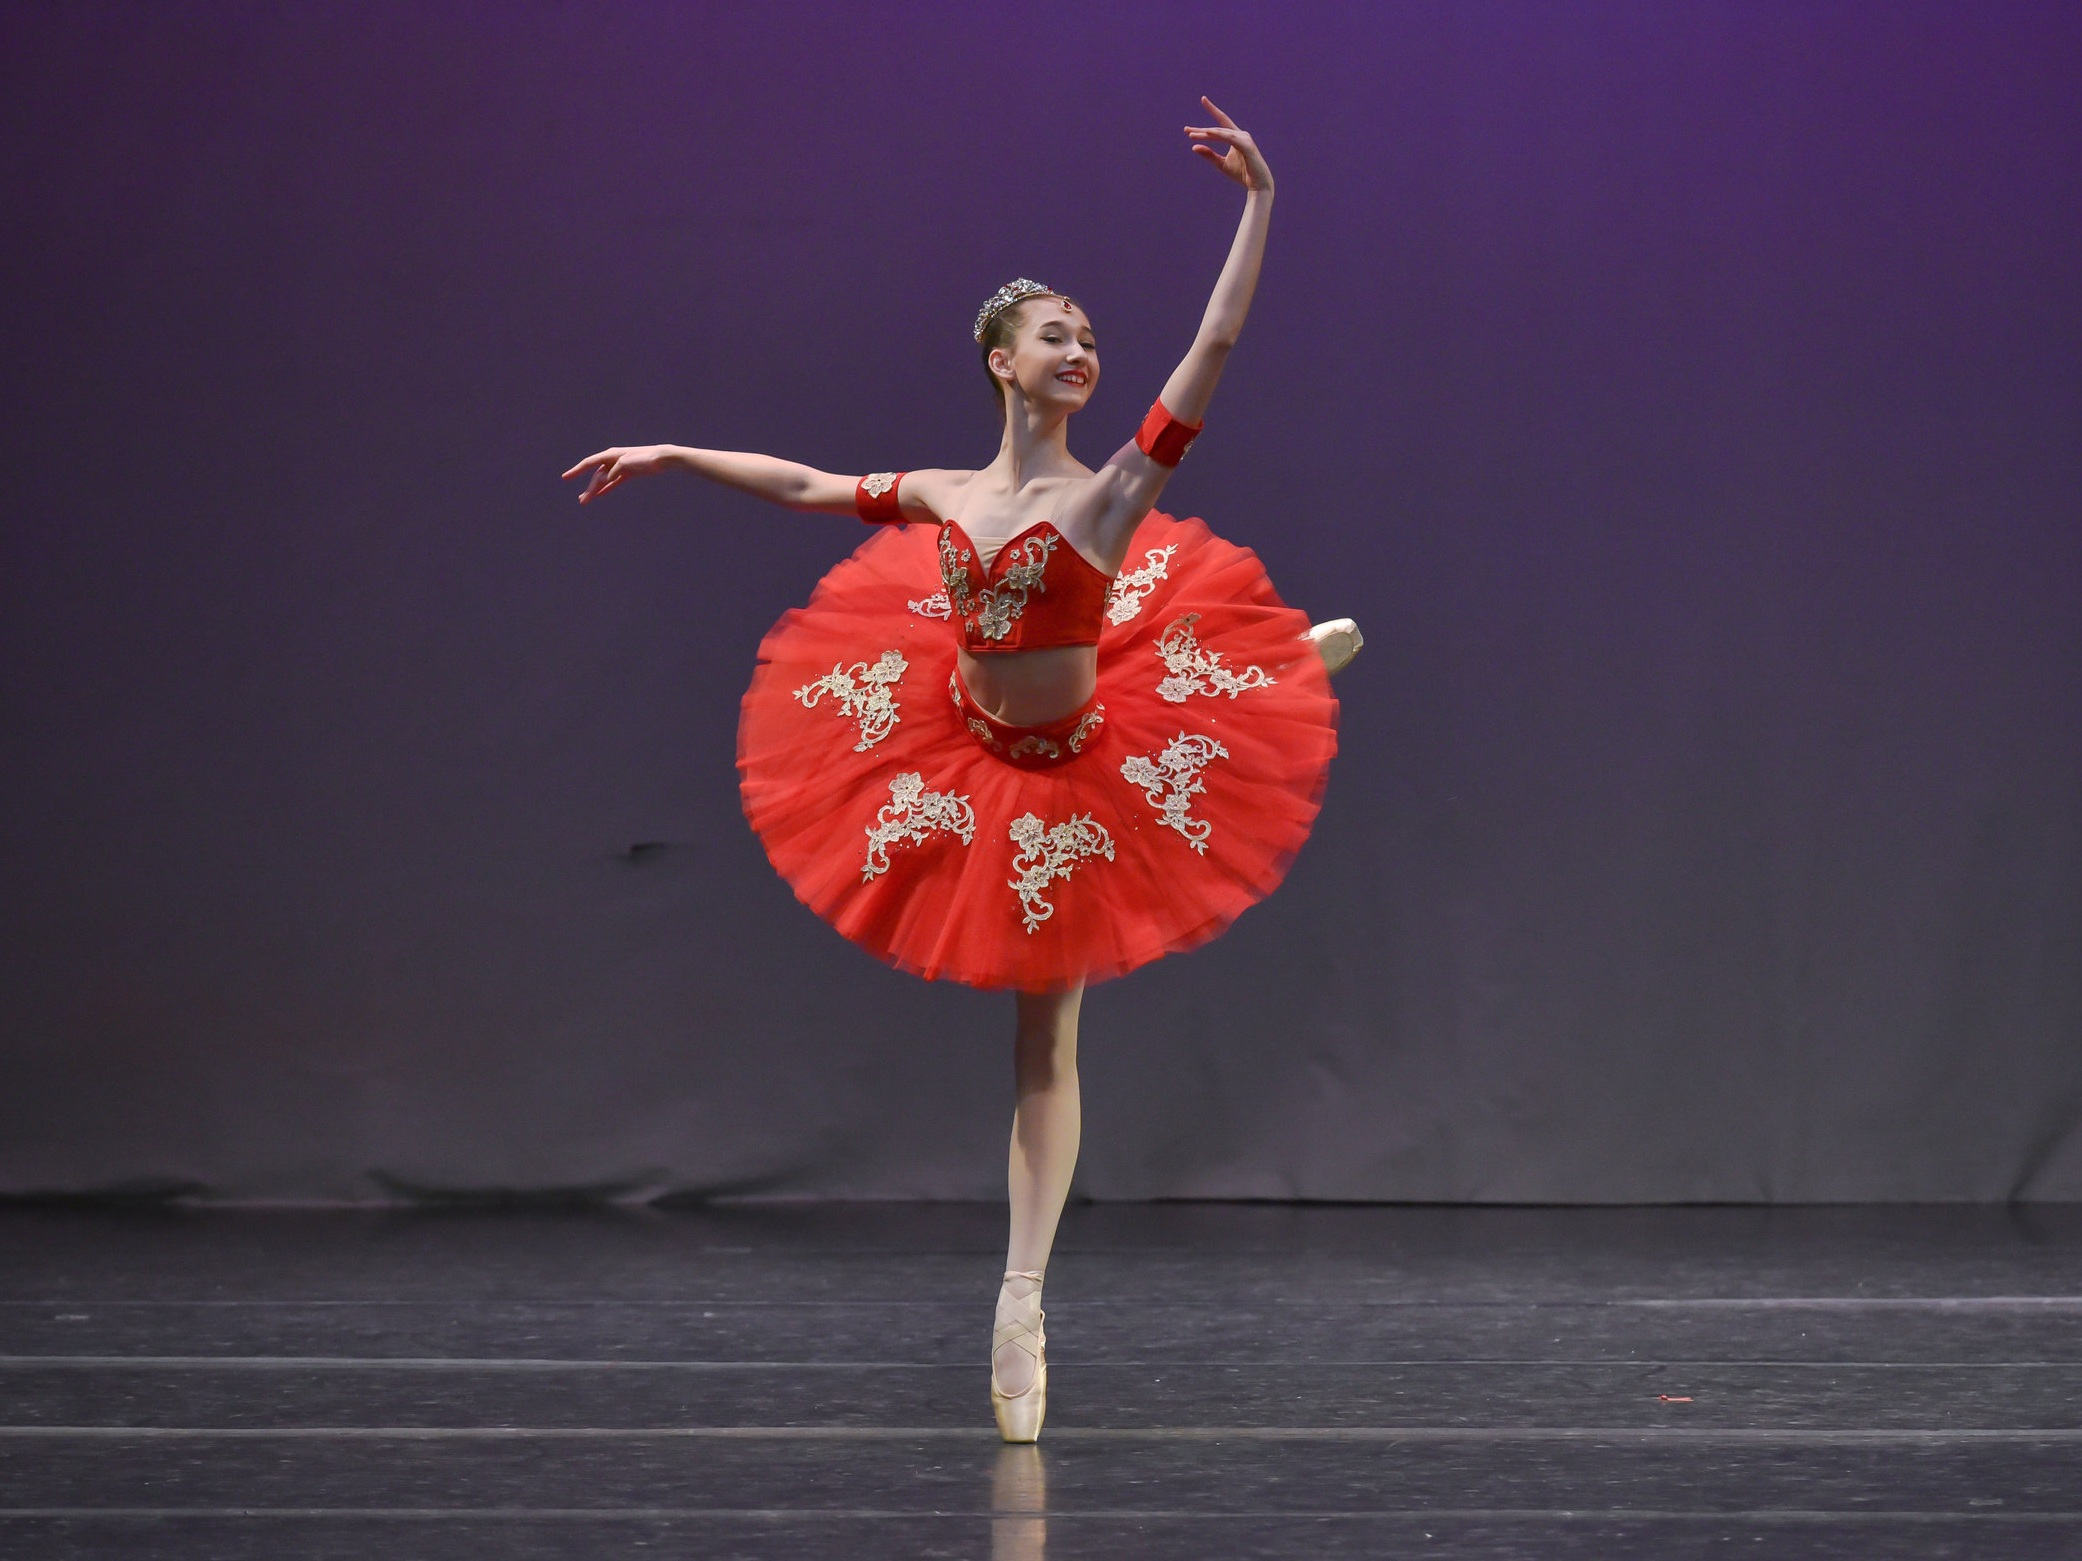 Mackenzie Kirsch YAGP 2018 Boston Photo 21_hires (1).jpg